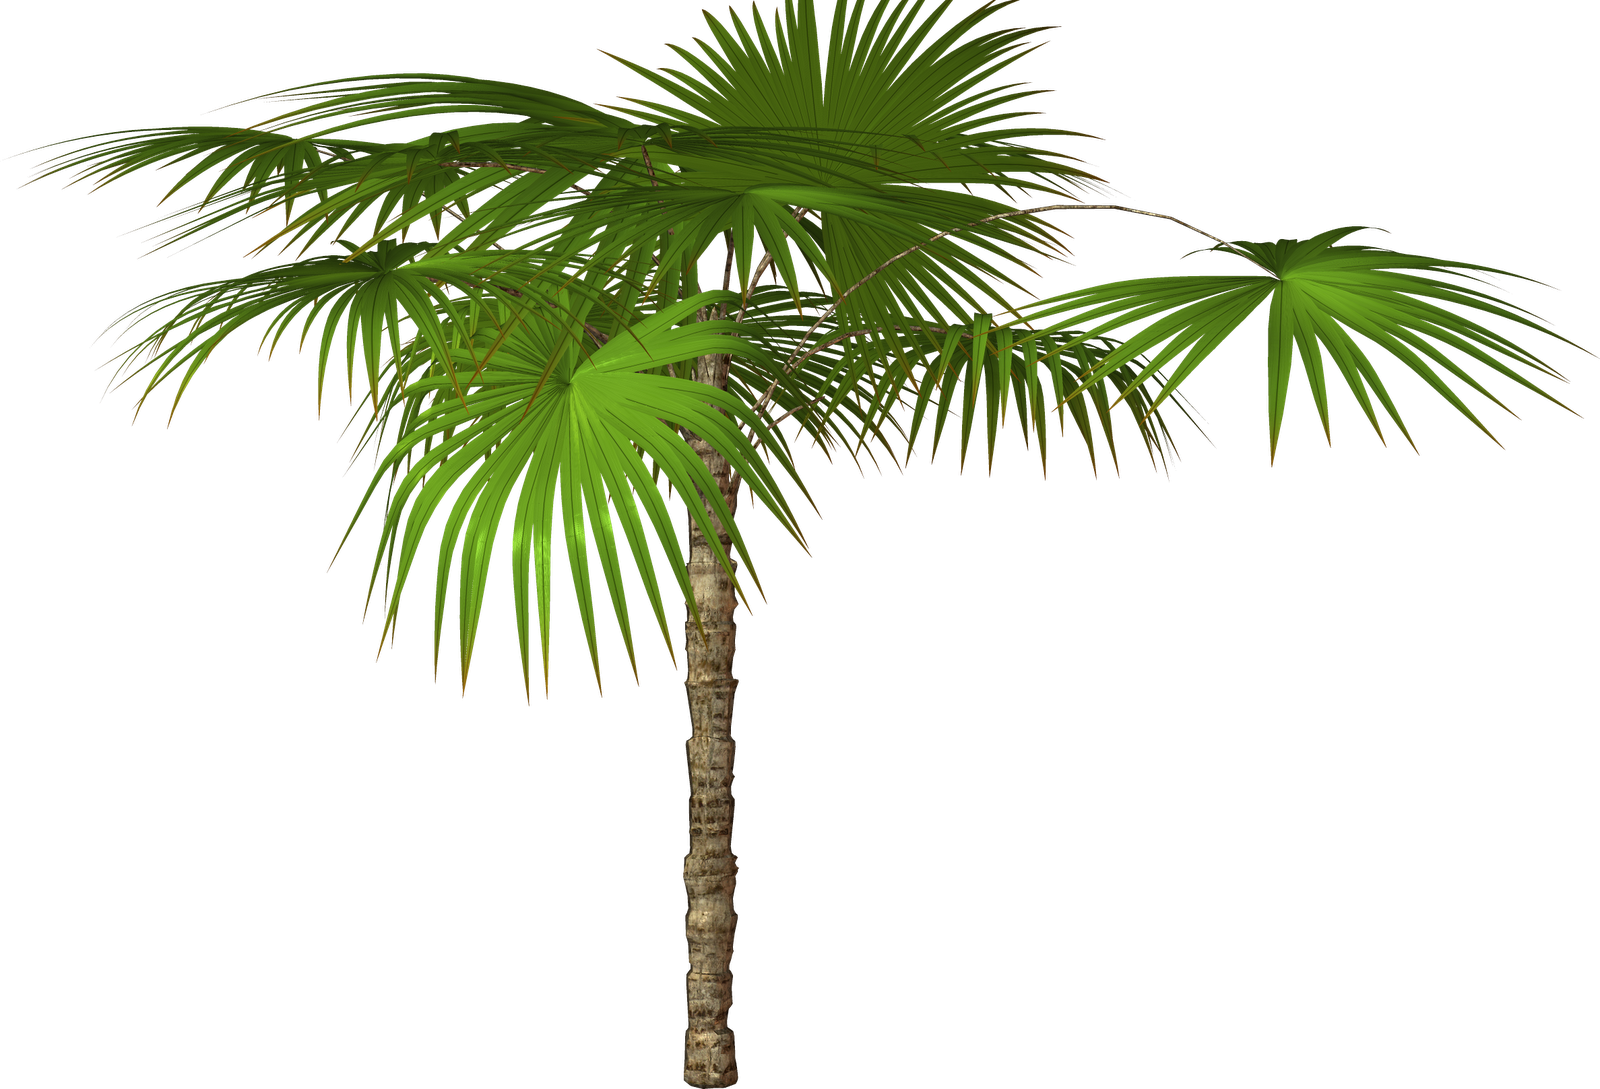 Christmas palm tree clipart image freeuse library Palm Tree Transparent PNG Pictures - Free Icons and PNG Backgrounds image freeuse library